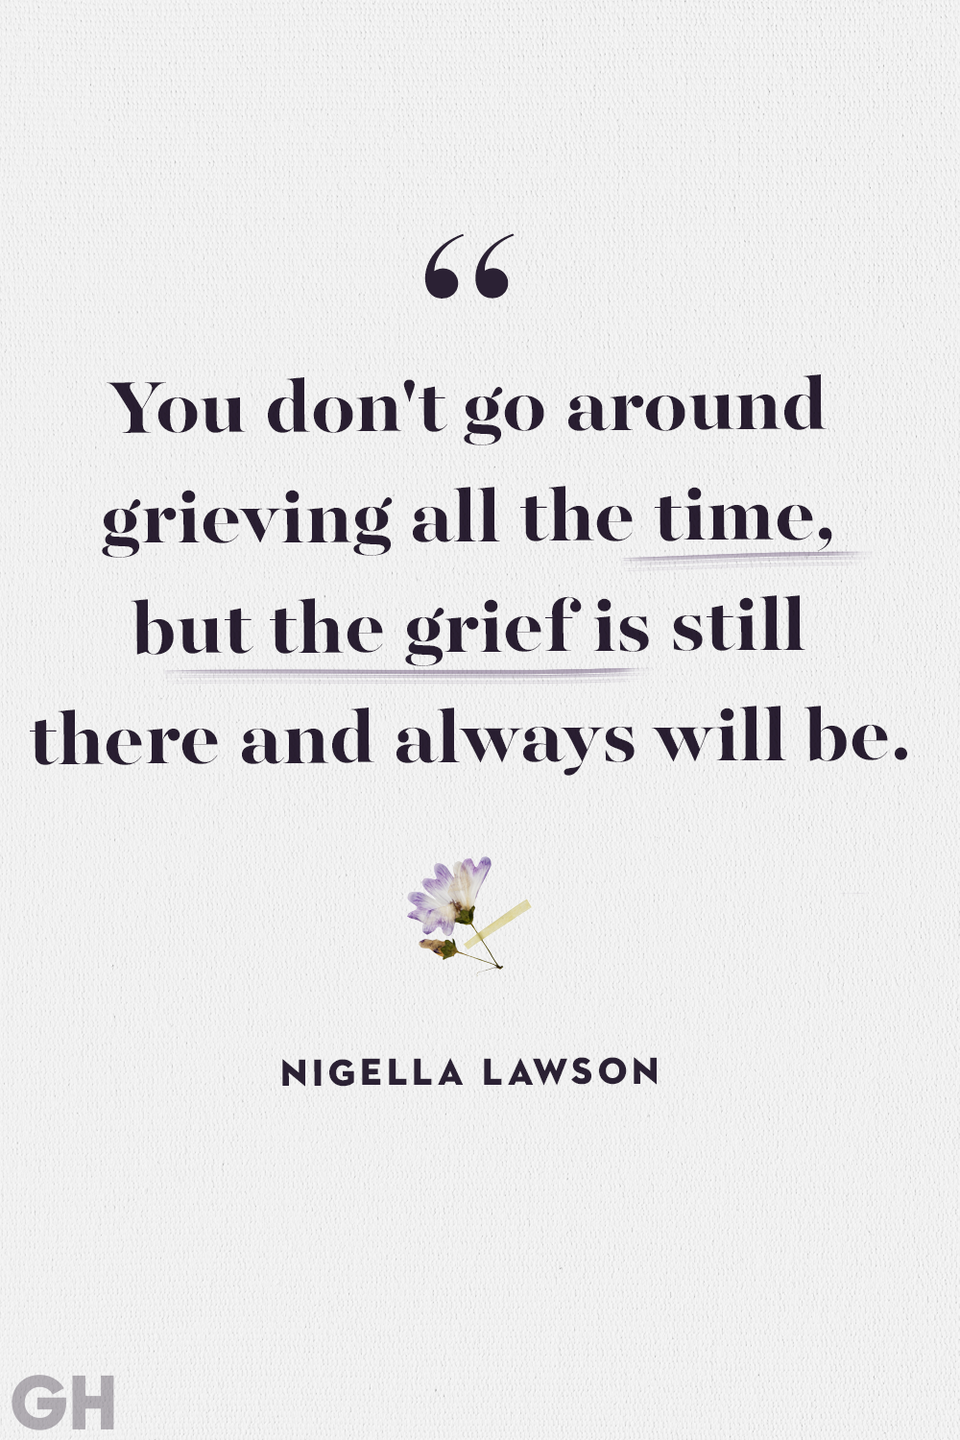 <p>You don't go around grieving all the time, but the grief is still there and always will be.</p>